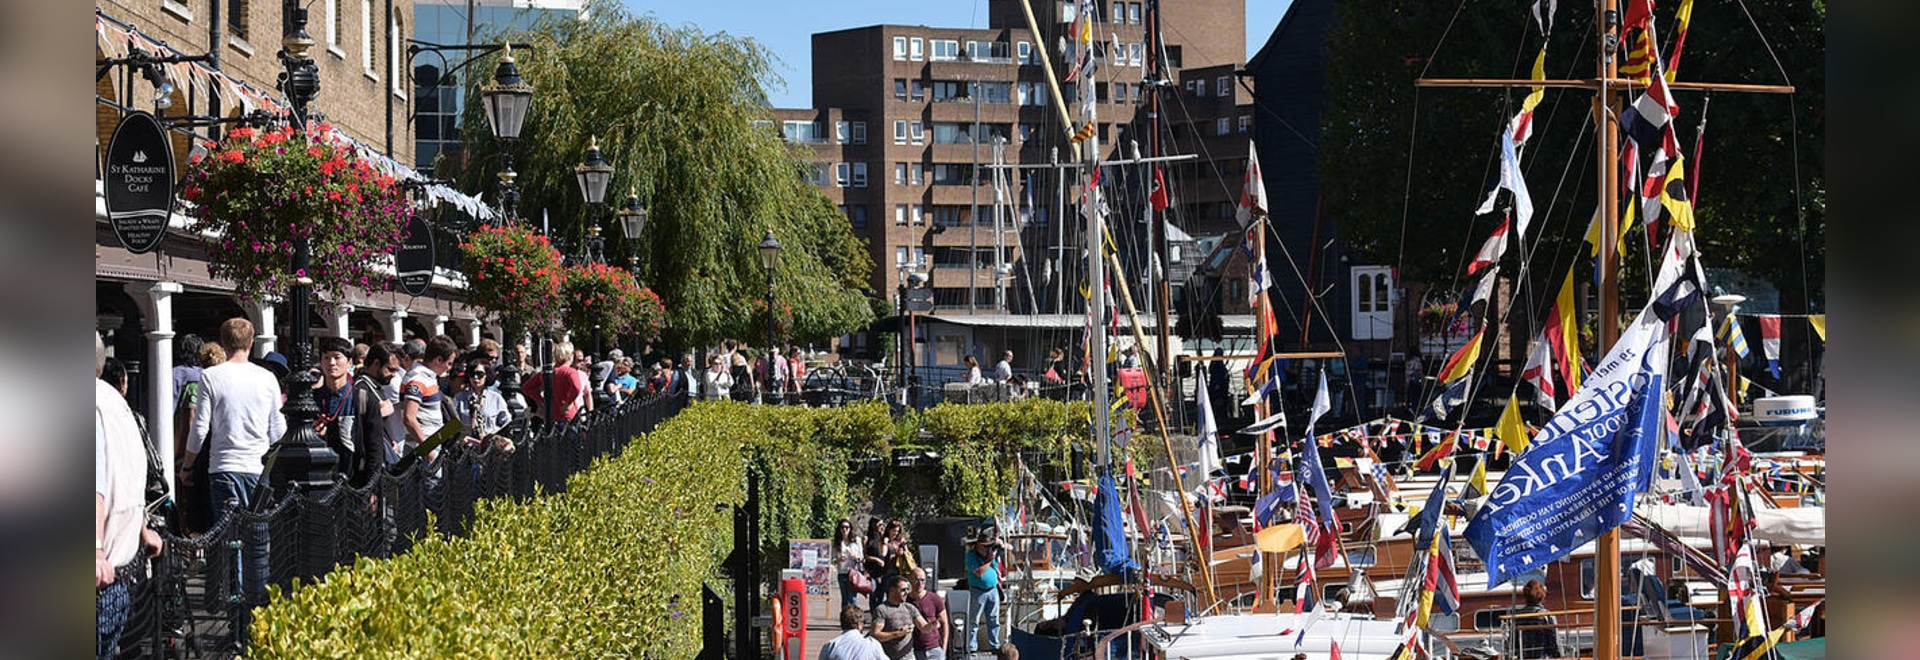 The event will take place at St Katharine Docks in London